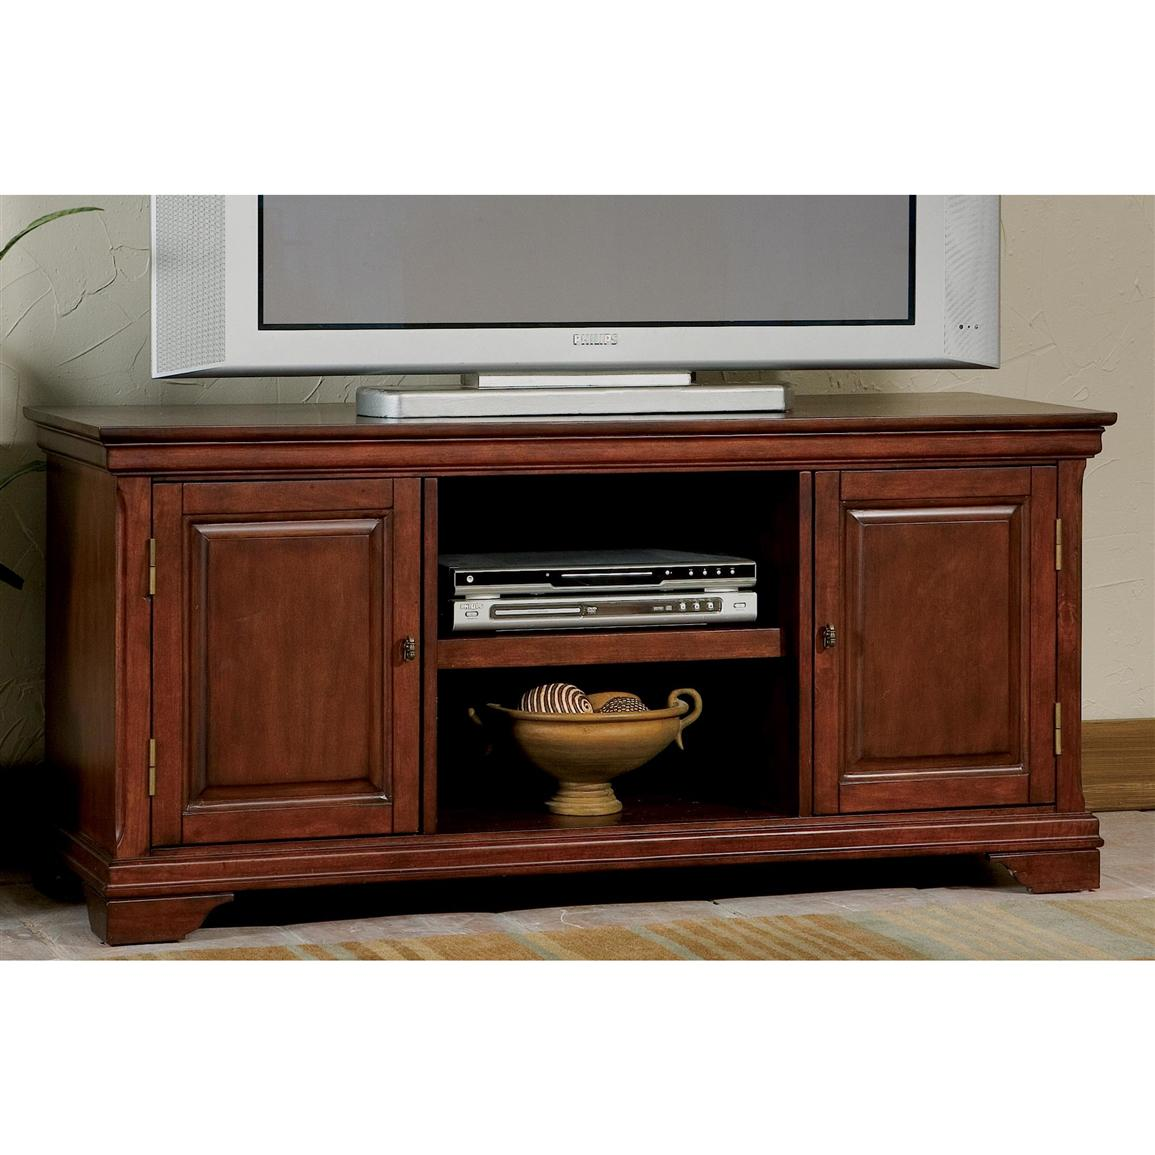 Home Styles™ Lafayette TV Stand, Cherry